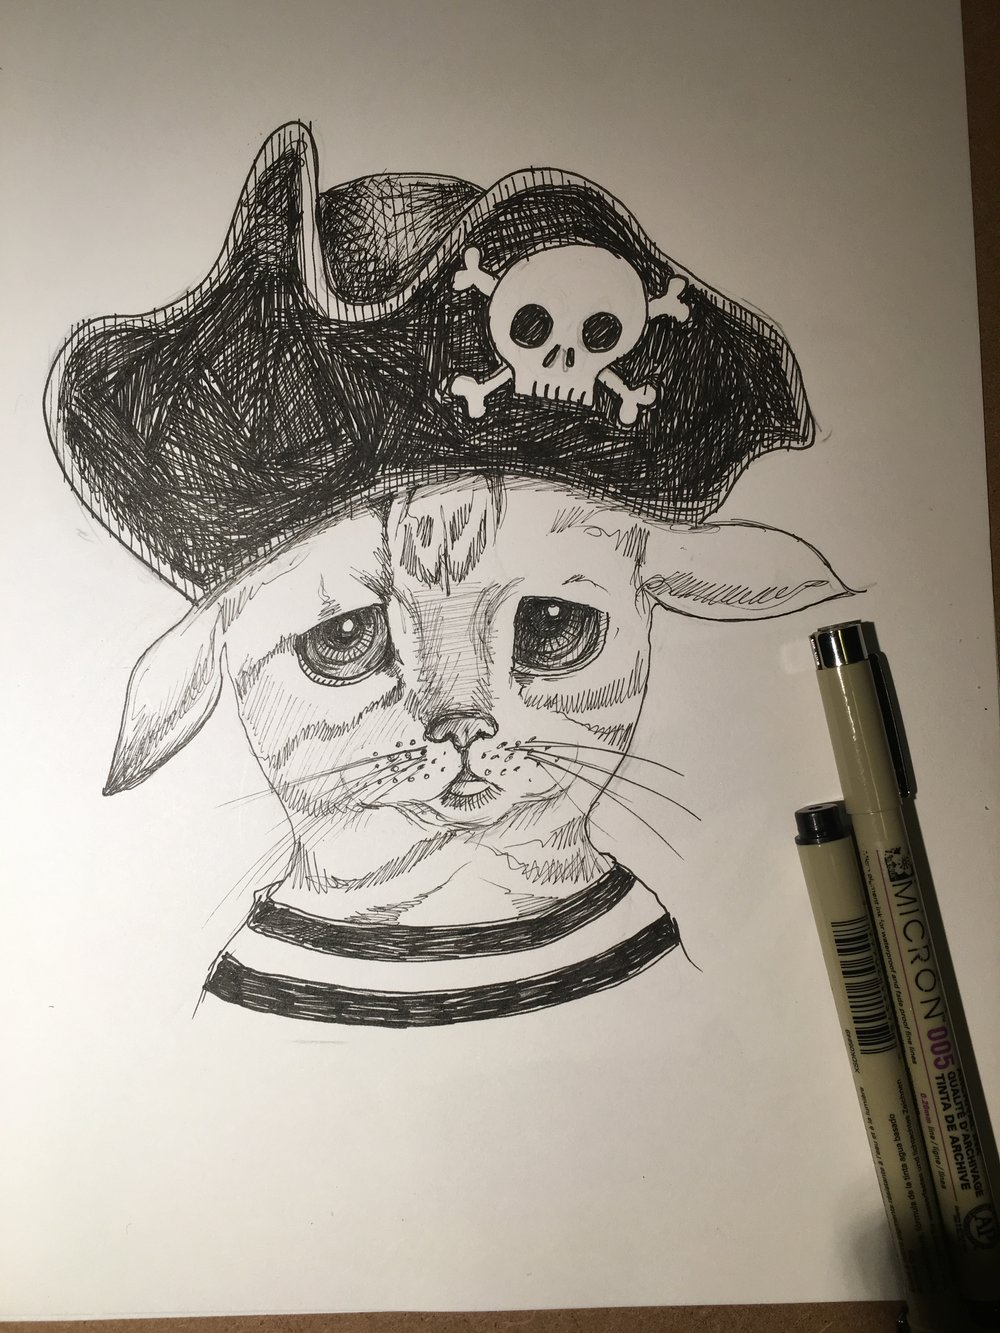 Pirate Kitty